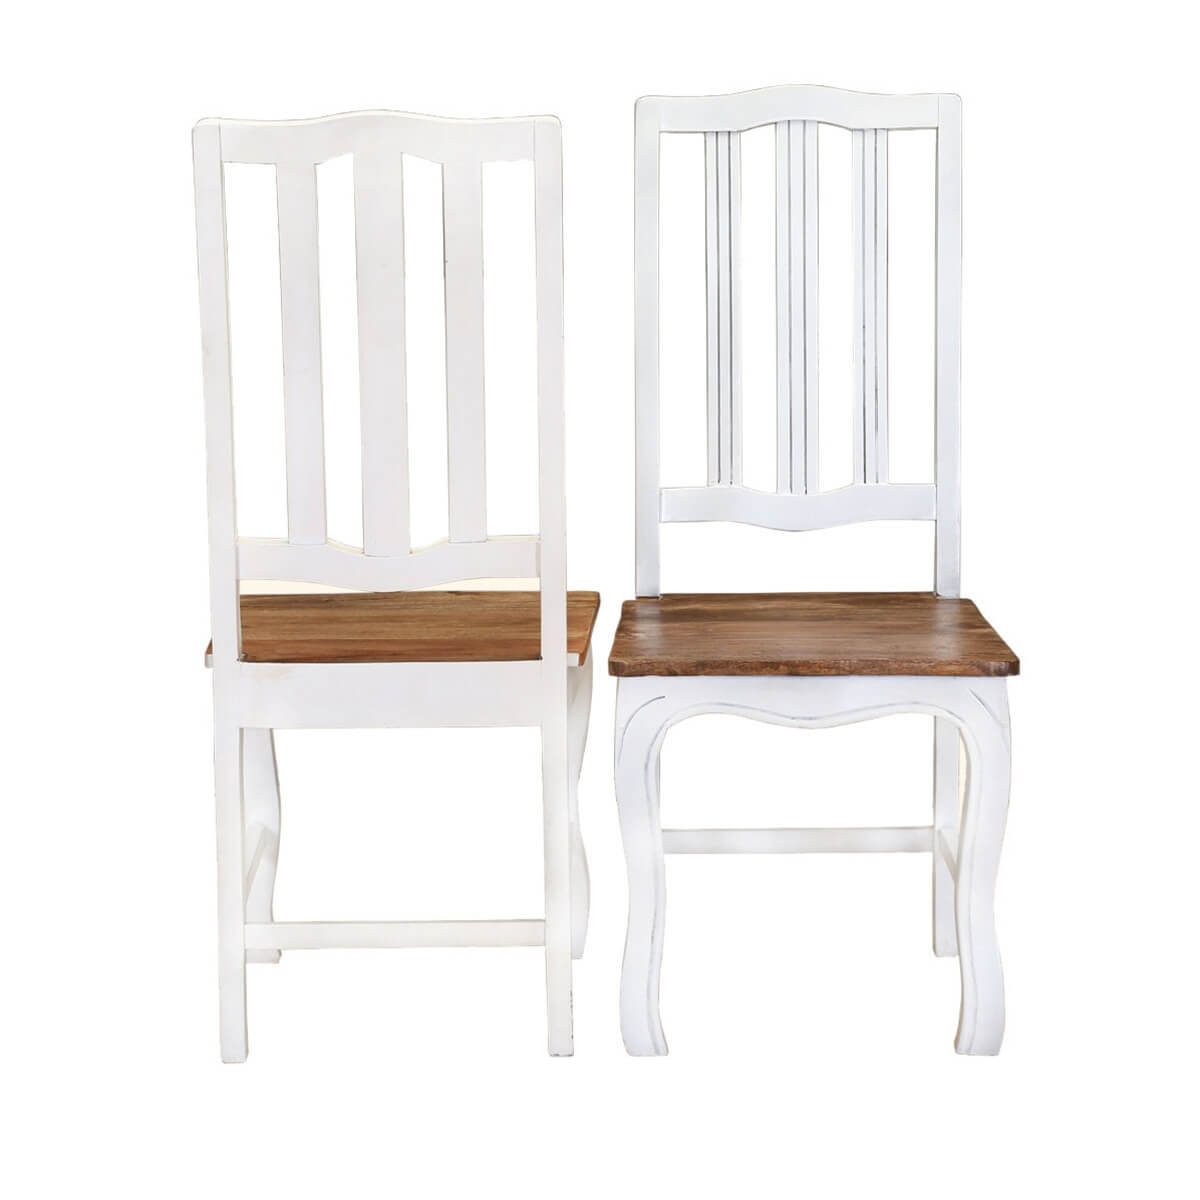 Rehoboth white and natural wood cabriole dining chairs - Natural wood dining chairs ...